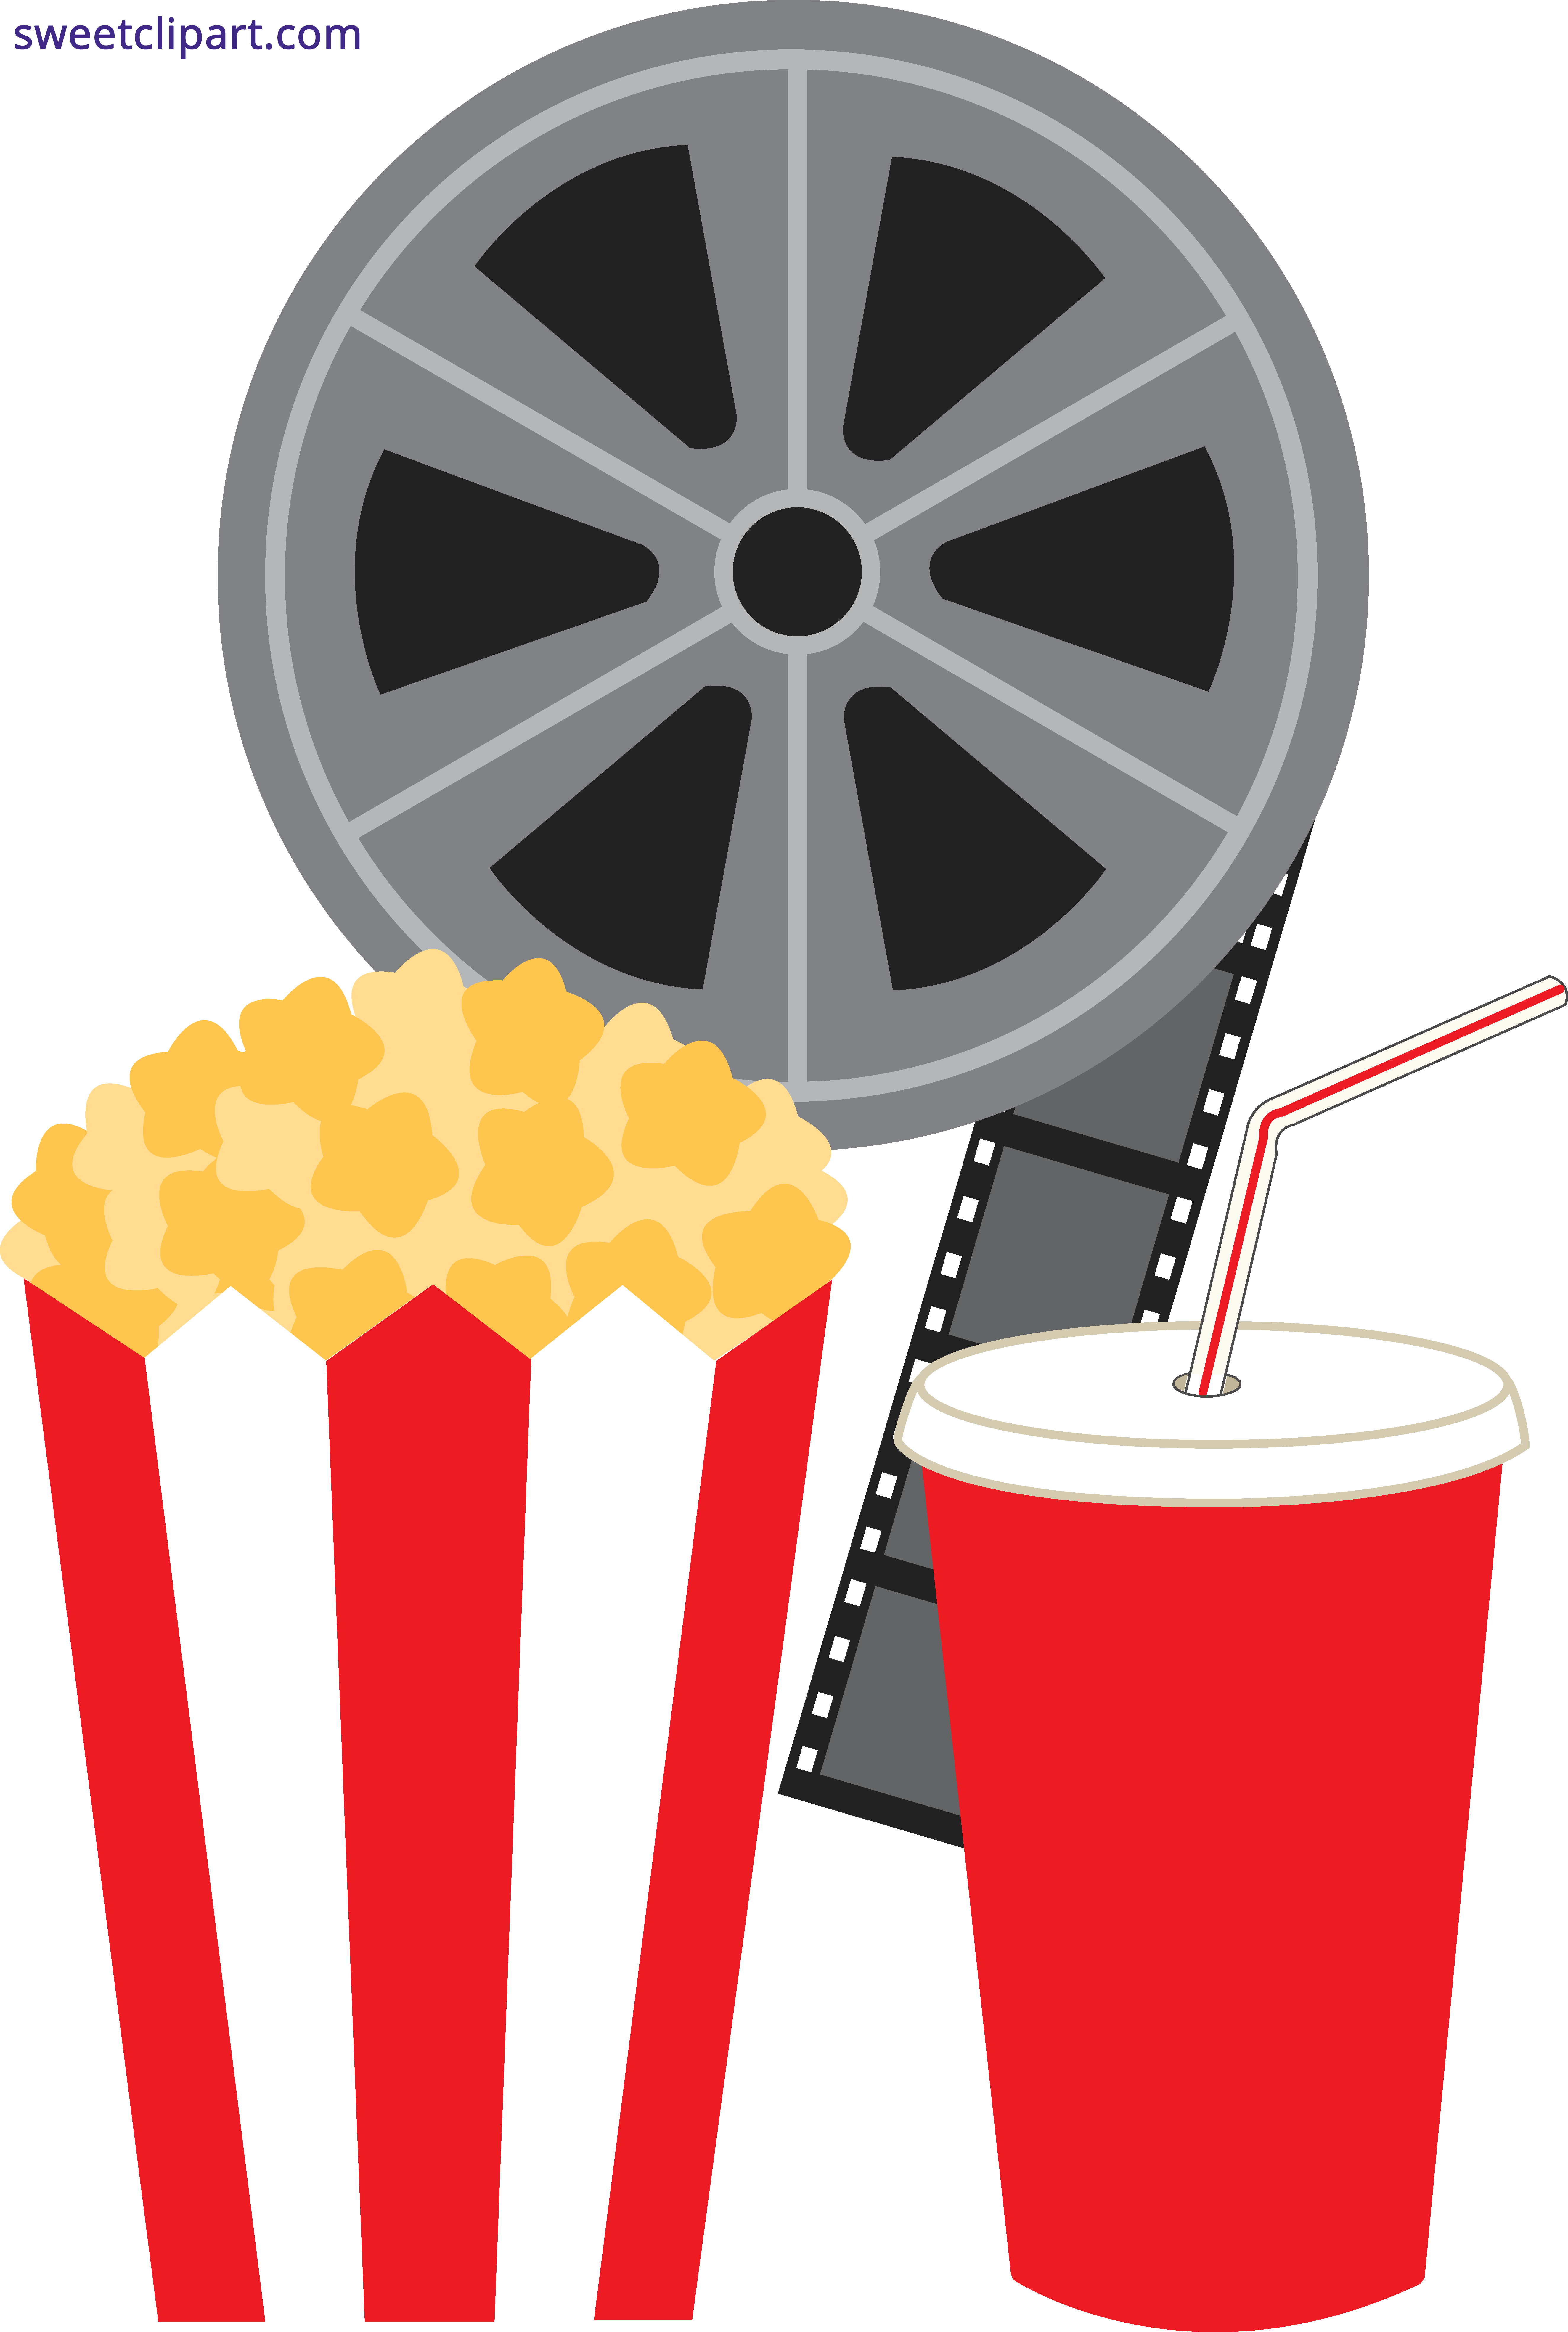 Popcorn Soda and Movie Clipart.